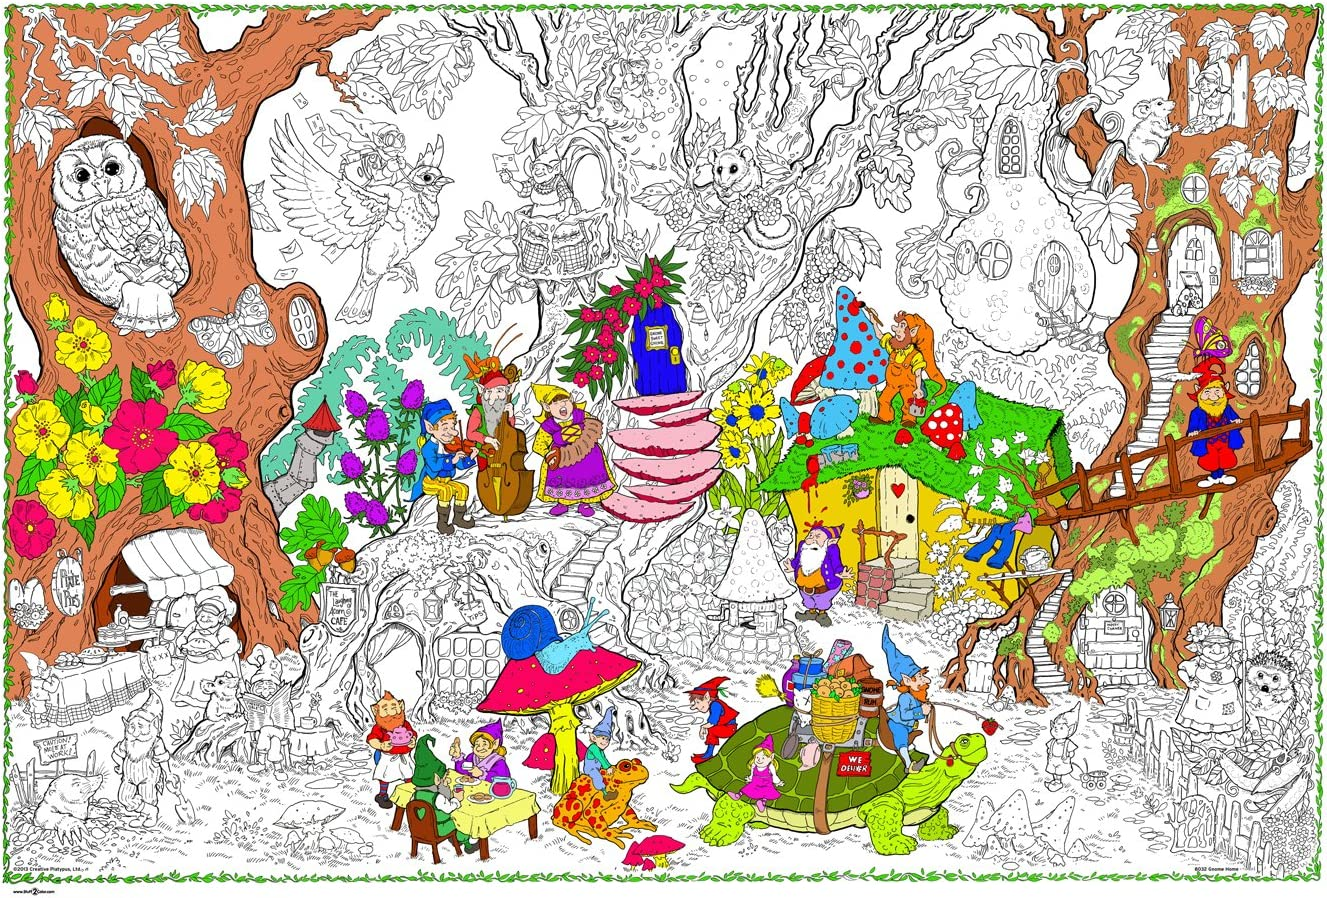 - Amazon.com: Gnome Home - Giant Wall Size Coloring Poster - 32.5